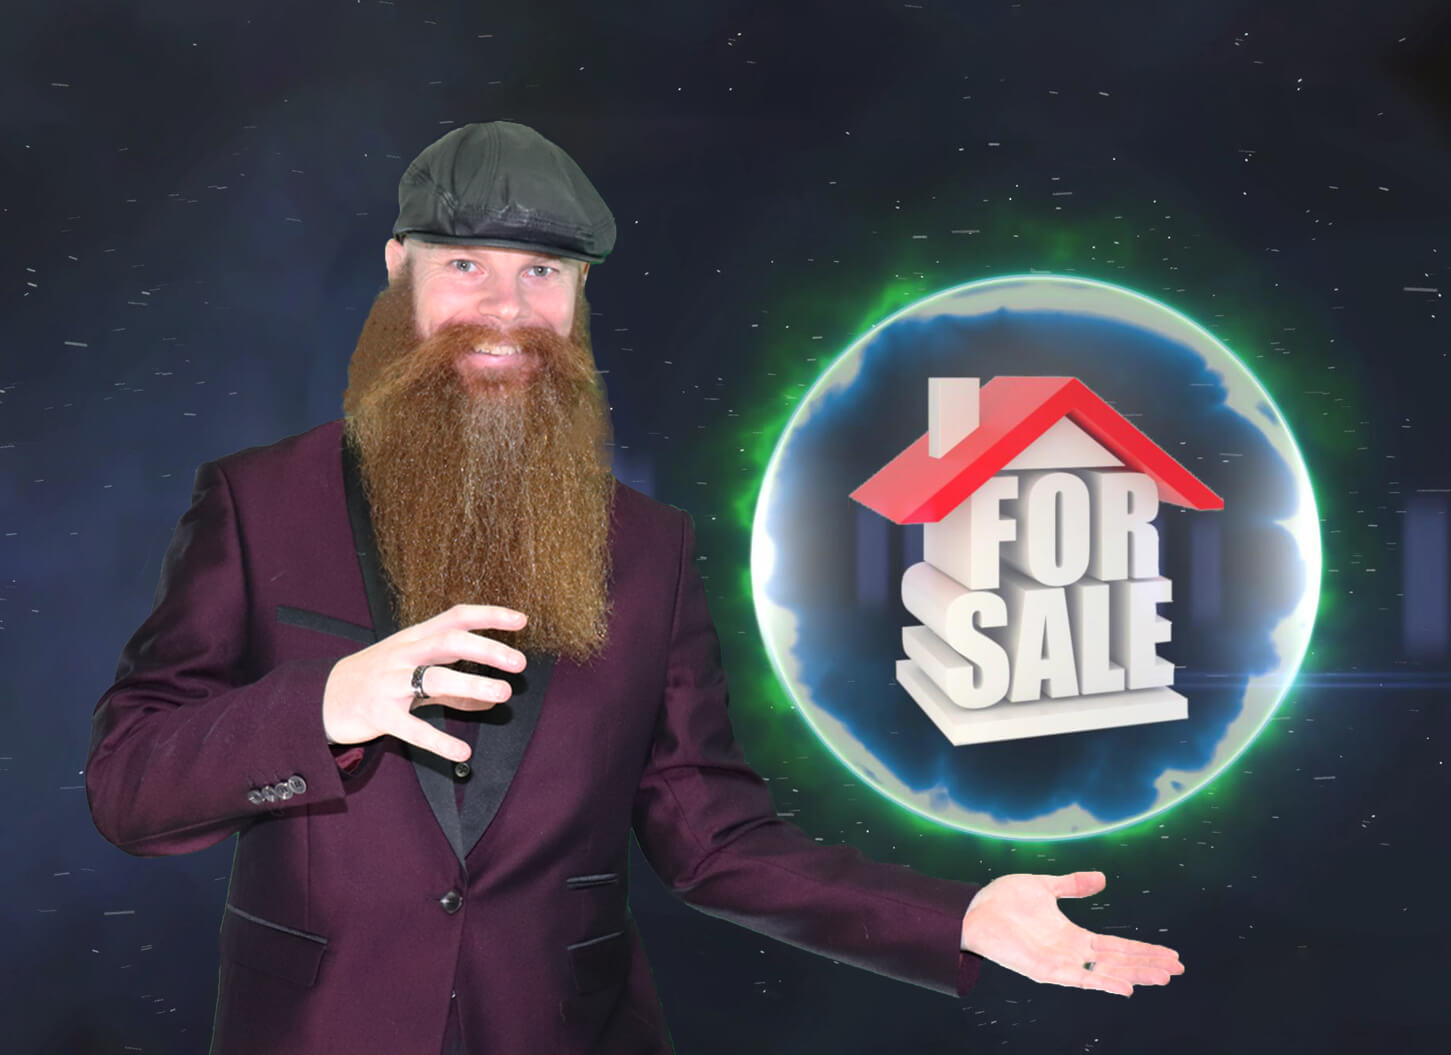 Steven Vertz - Coldwell Banker Real Estate Group ...Wizard of Real Estate....and the Largest Beard in Real Estate